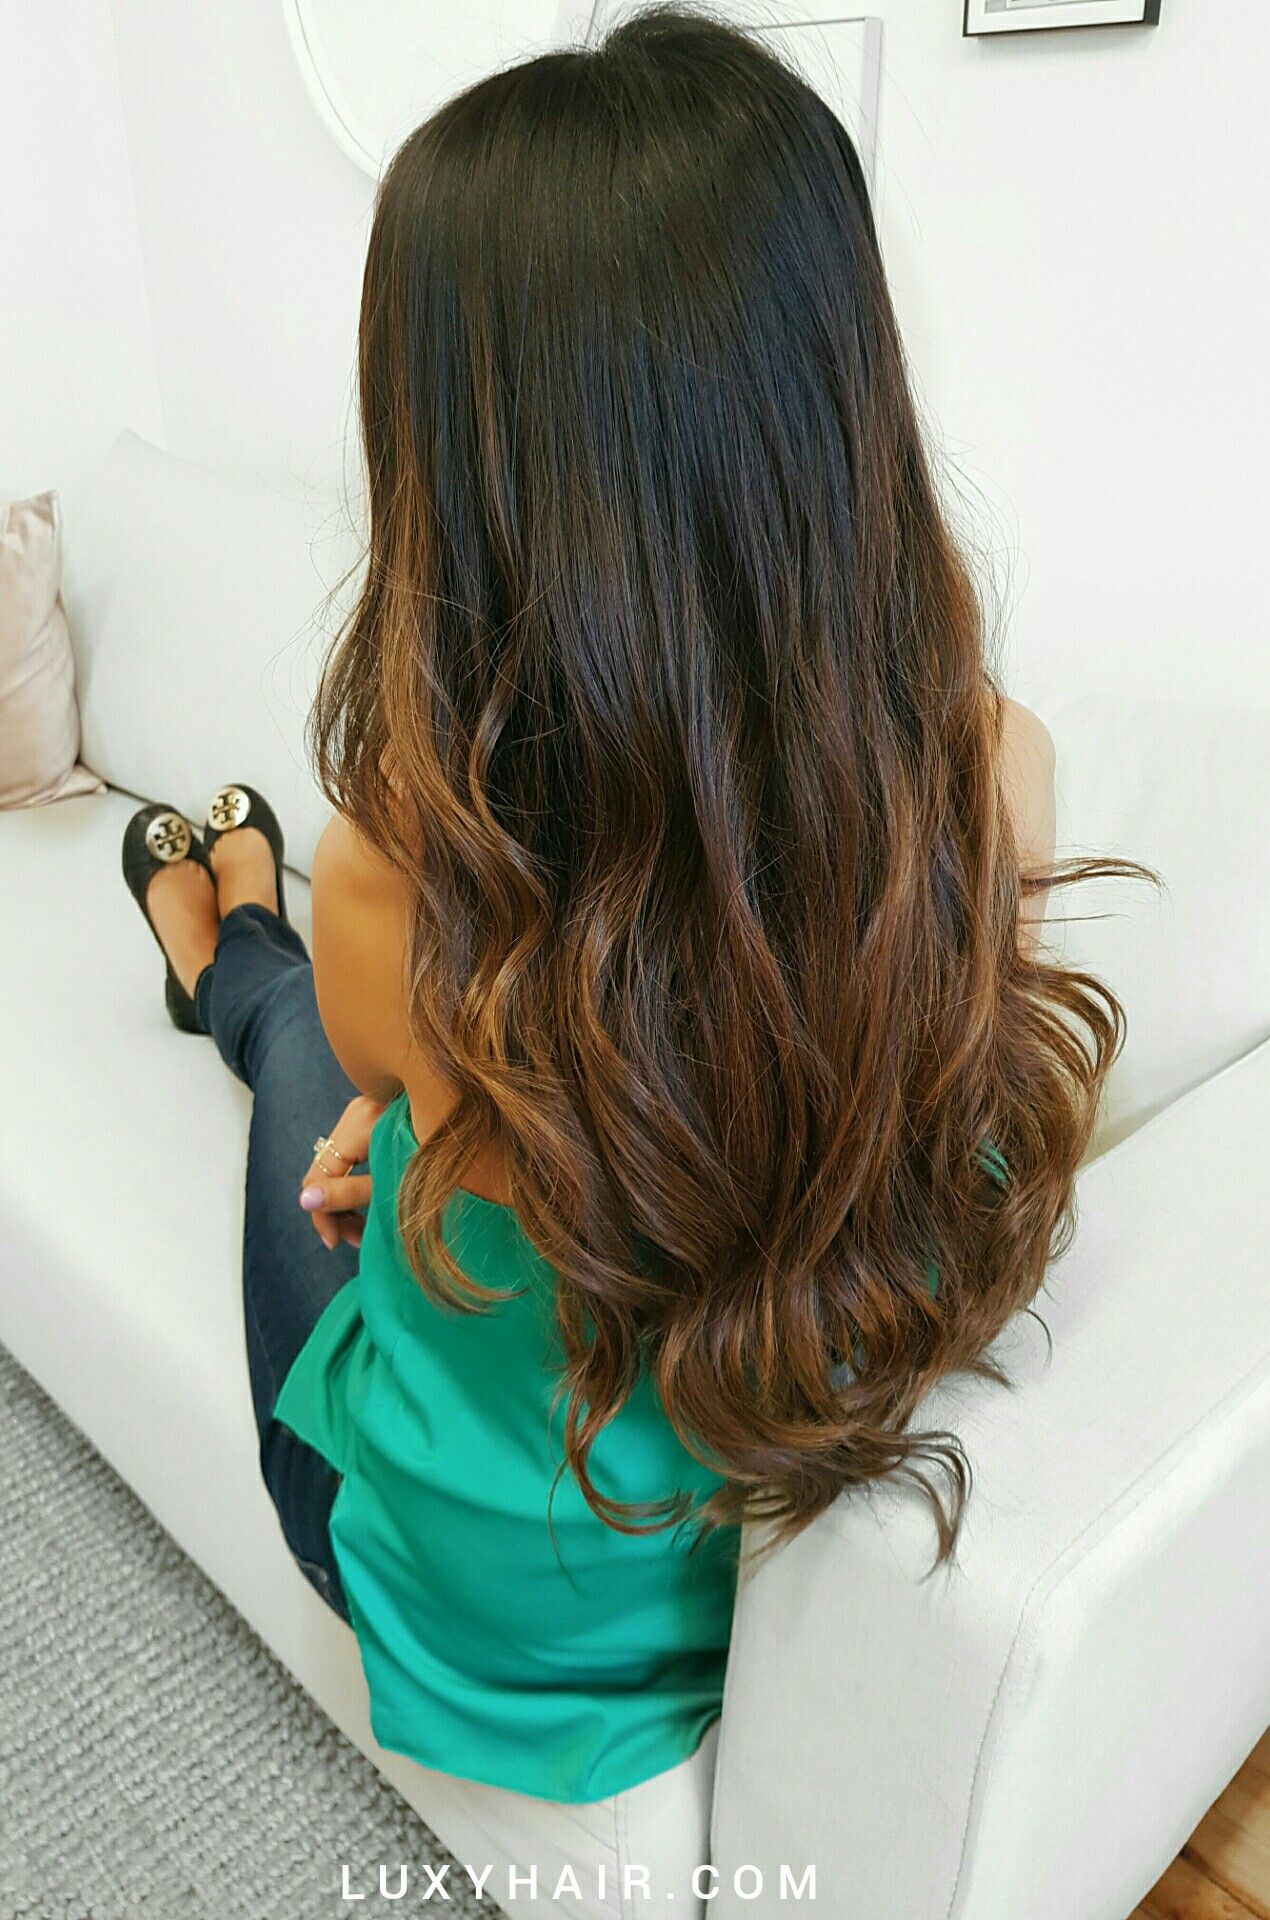 Ombre Chestnut T1c6 20 160g Luxy Hair Extensions Pinterest